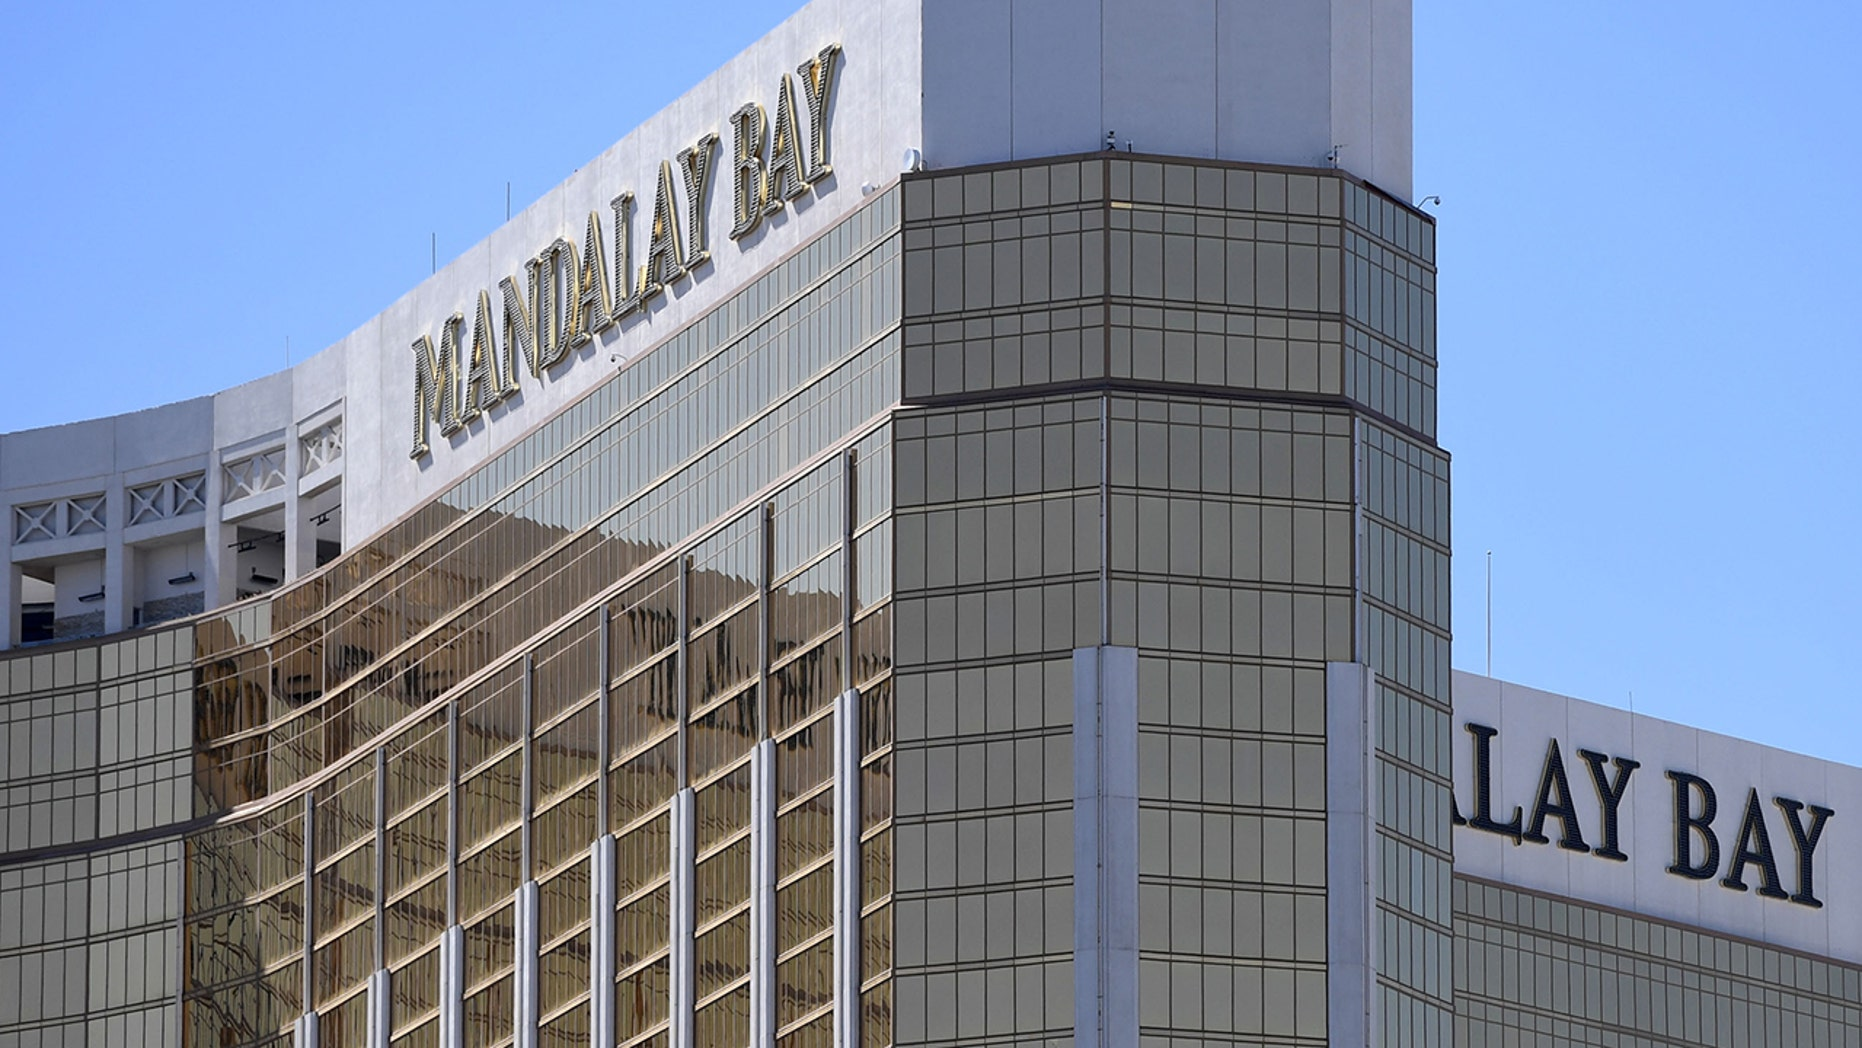 The Mandalay Bay Resort and Casino in Las Vegas. (Getty Images)